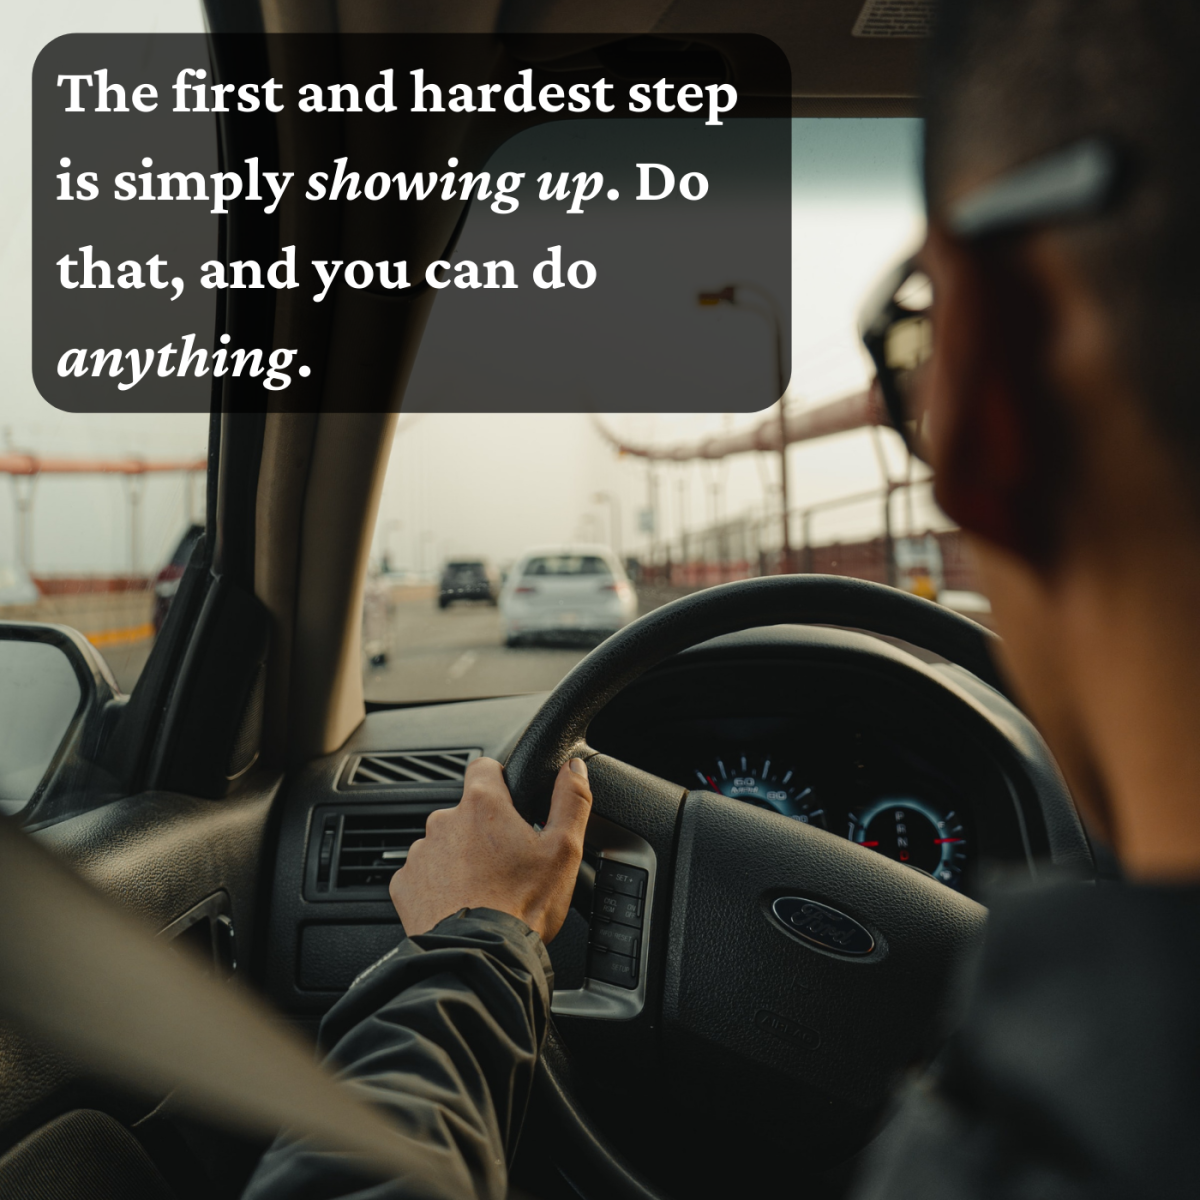 Getting there is often the hardest part, but it's also the most important!